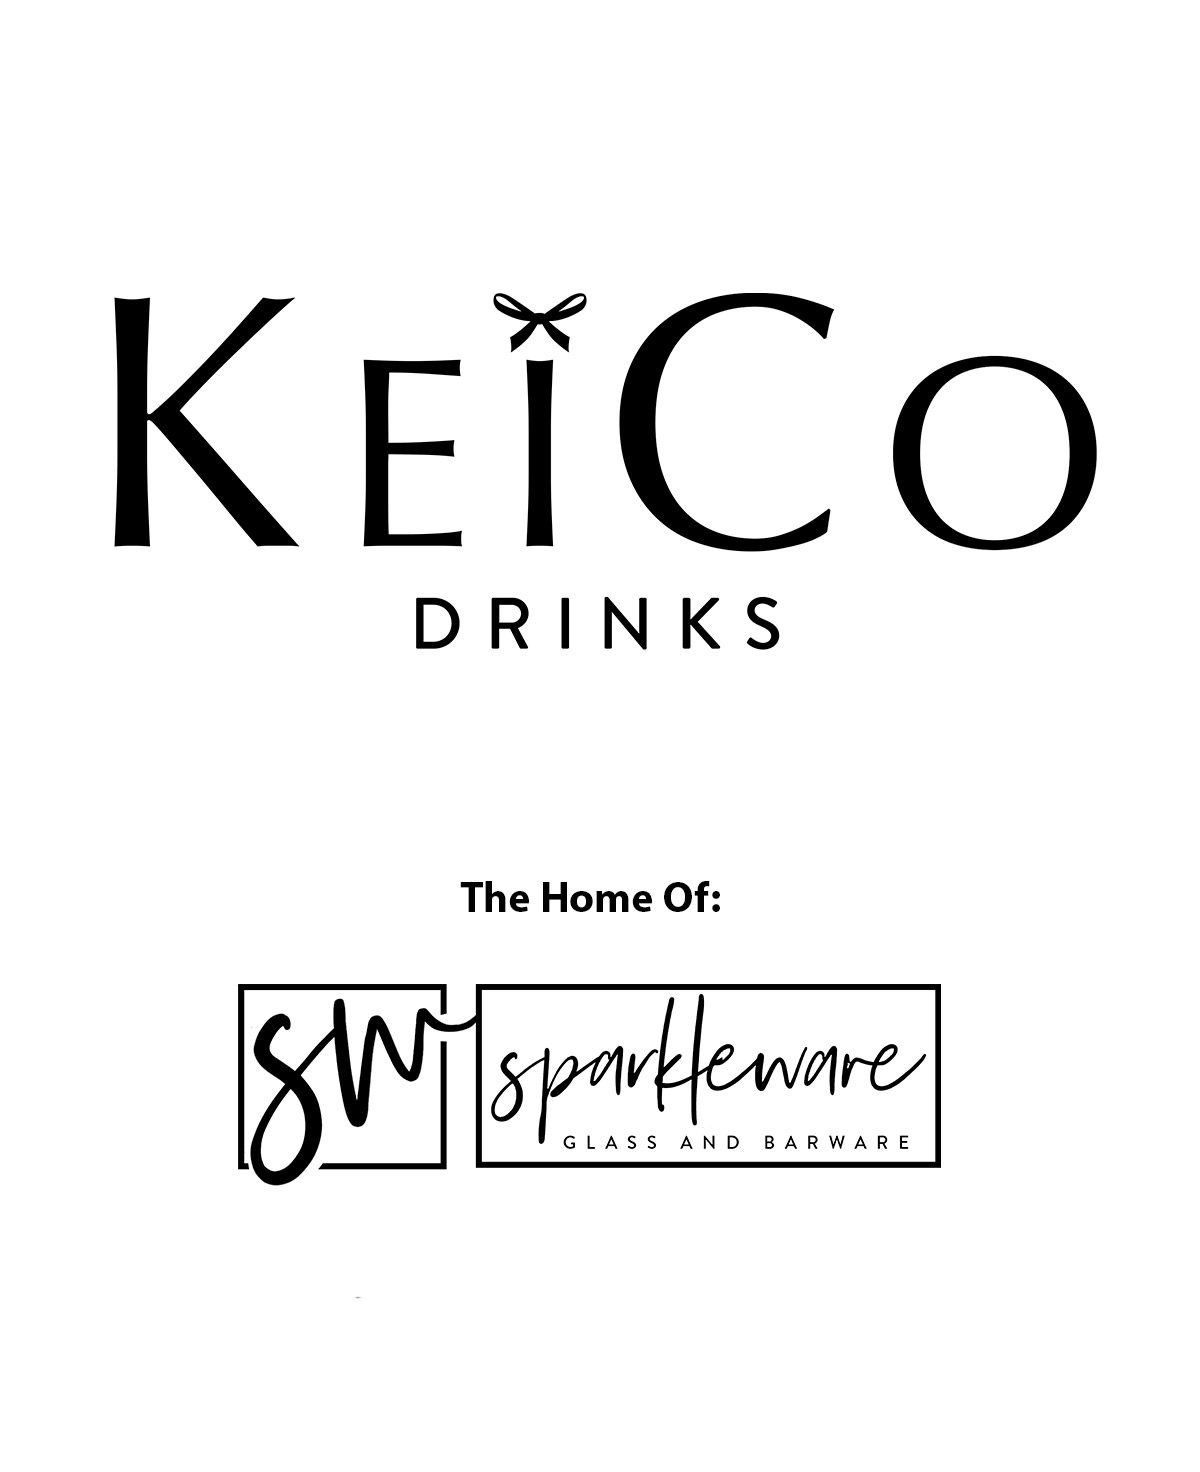 KeiCo Drinks | Sparkleware | About Us